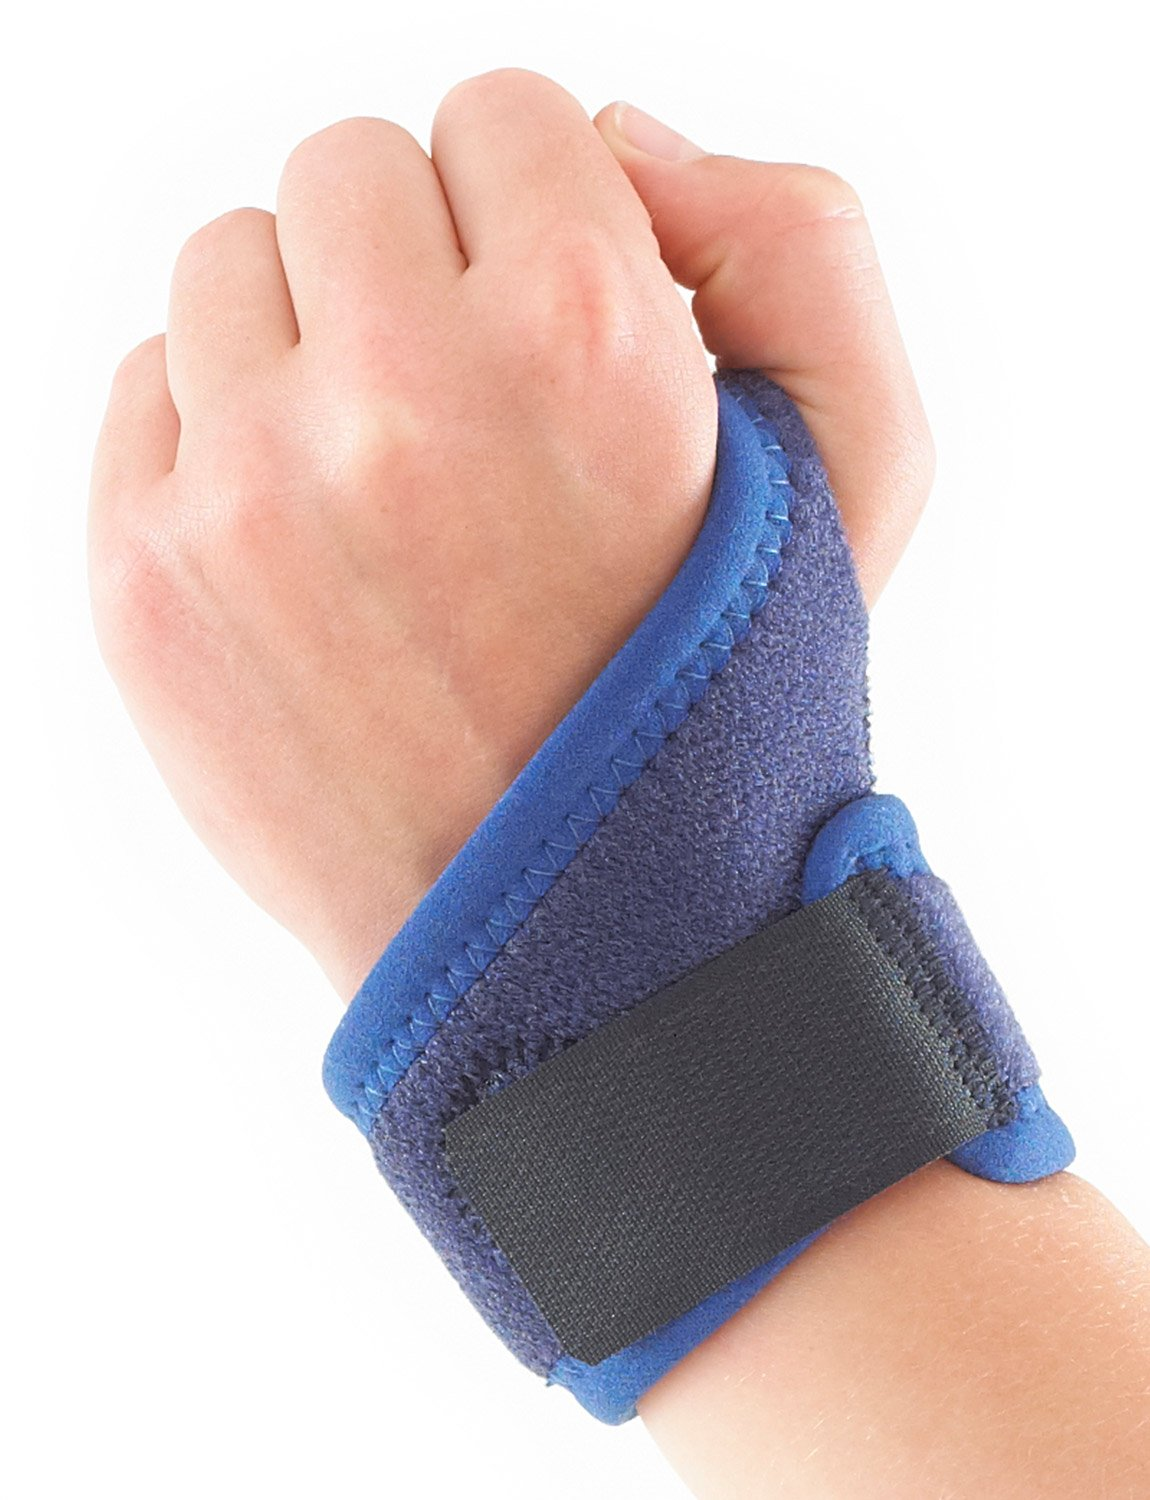 Neo G Wrist Brace for Kids - Support For Juvenile Arthritis, Joint Pain, Hand Sprains, Strains, Sports, Gymnastics, Tennis - Adjustable Compression - Class 1 Medical Device - One Size - Blue by Neo-G (Image #2)